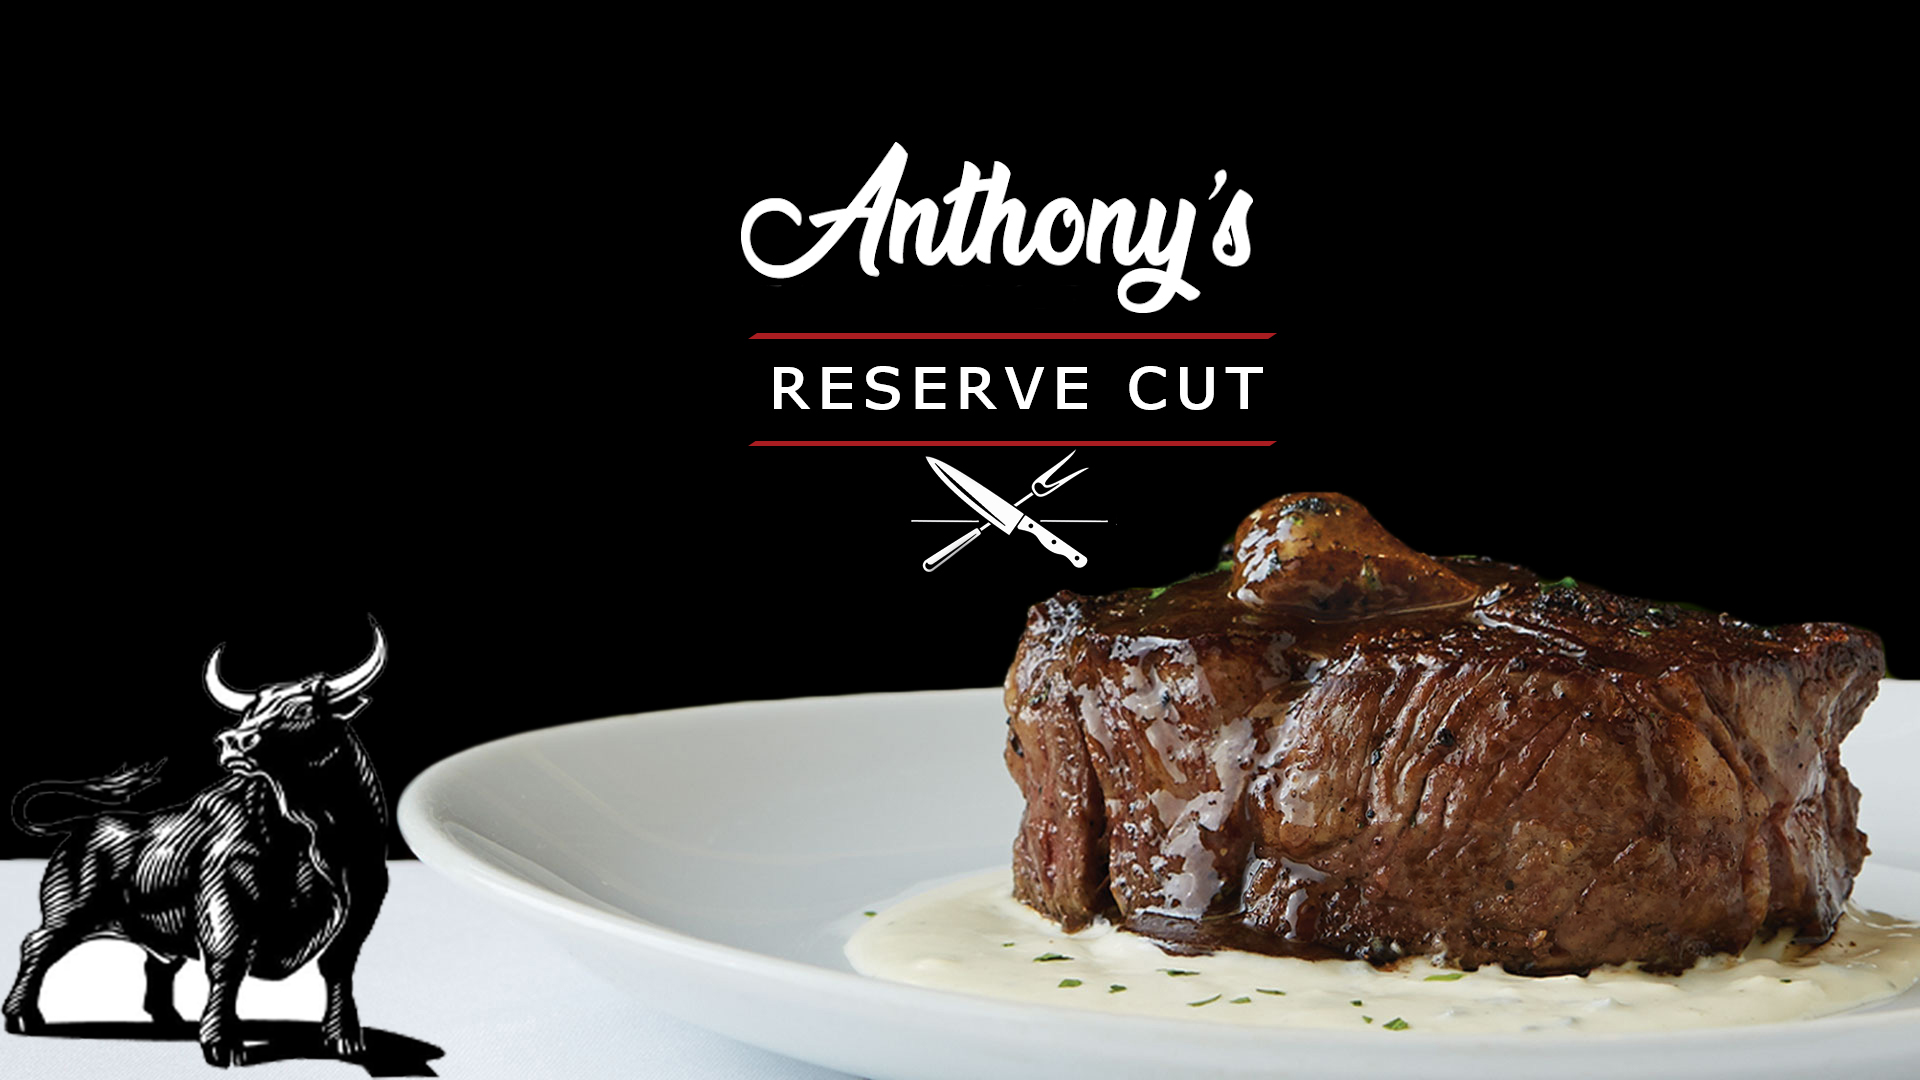 Anthony's Reserve Cut.1